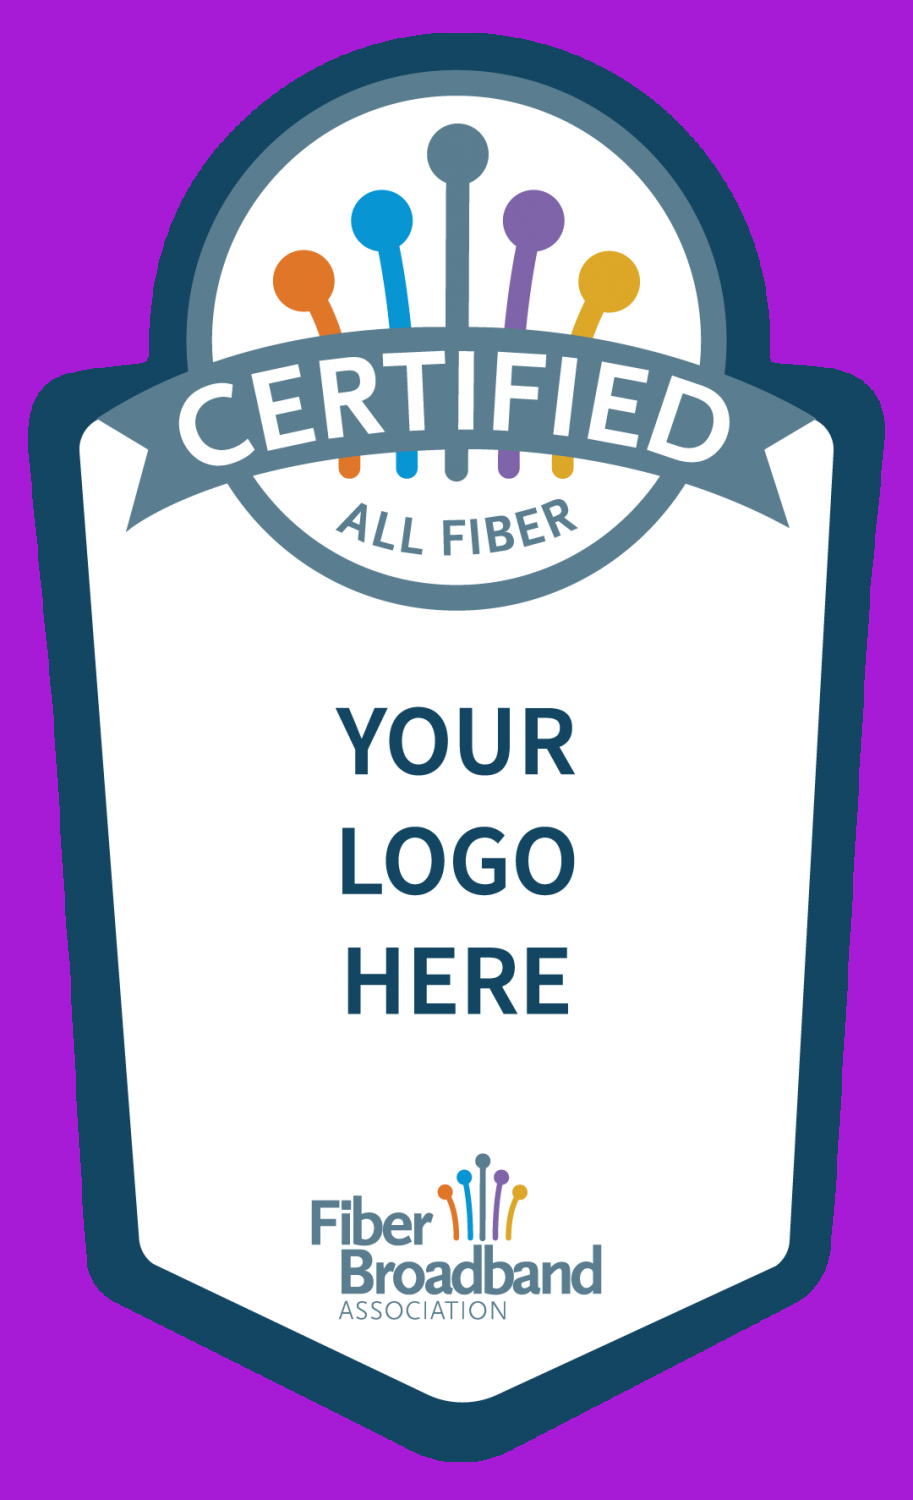 Fiber Broadband Association All Fiber Service Provider Certification